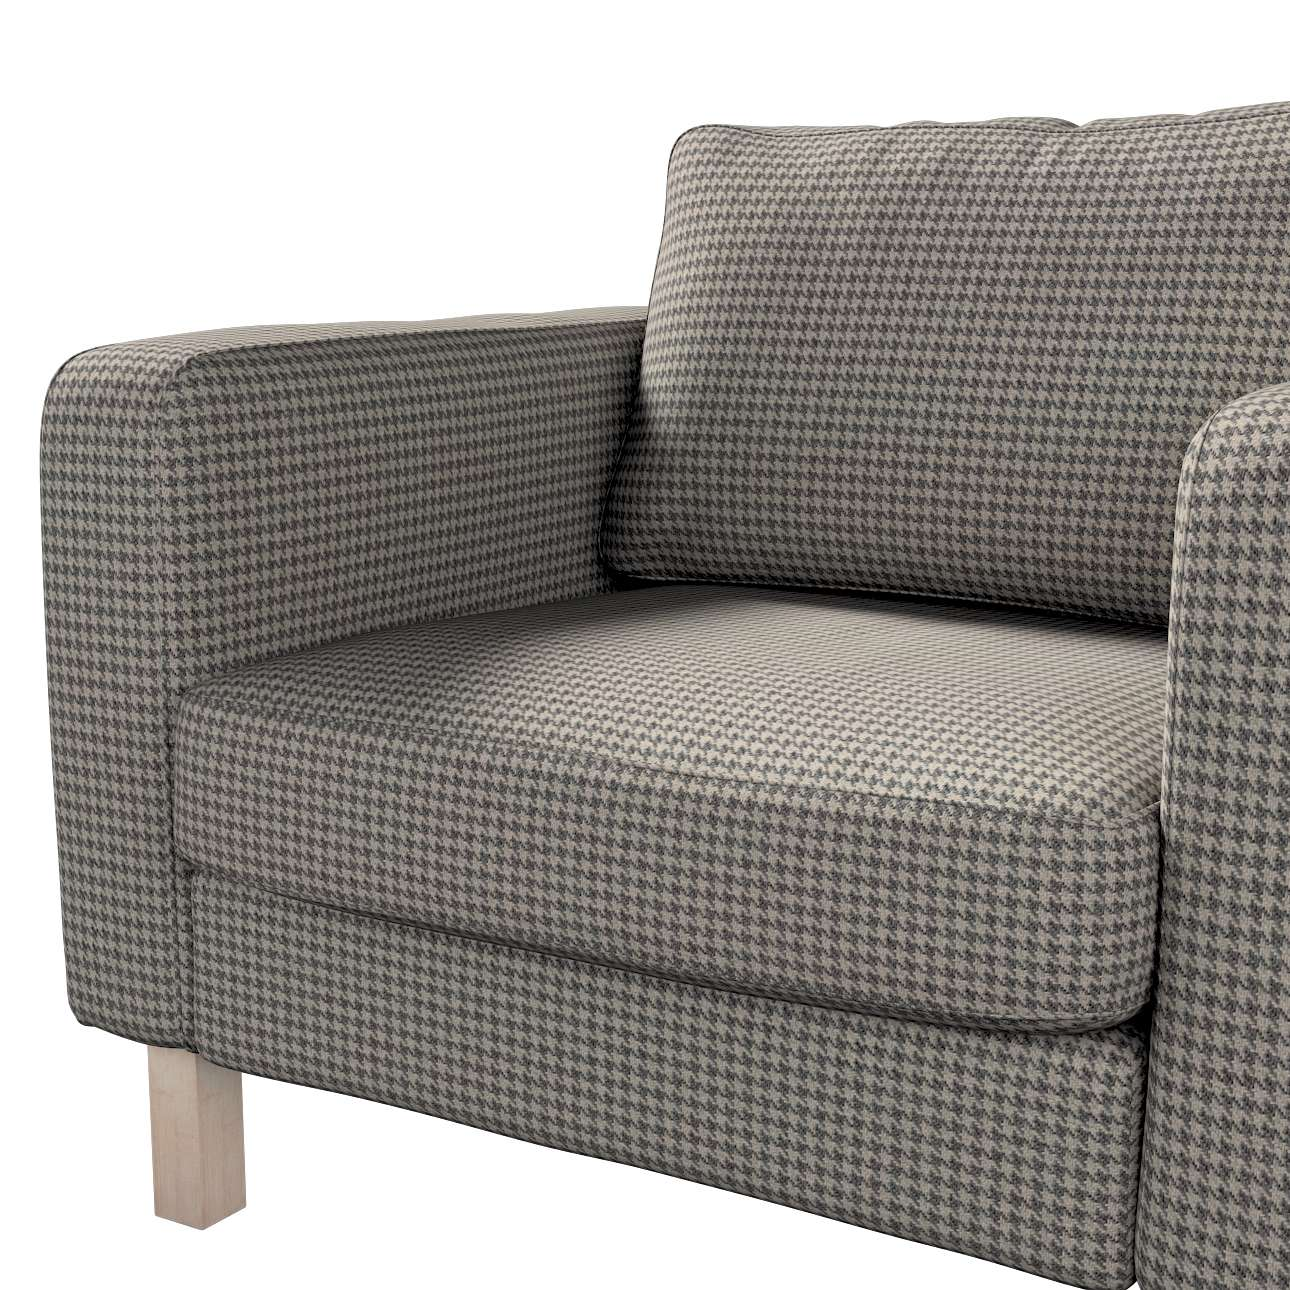 Karlstad armchair cover in collection Edinburgh, fabric: 703-14